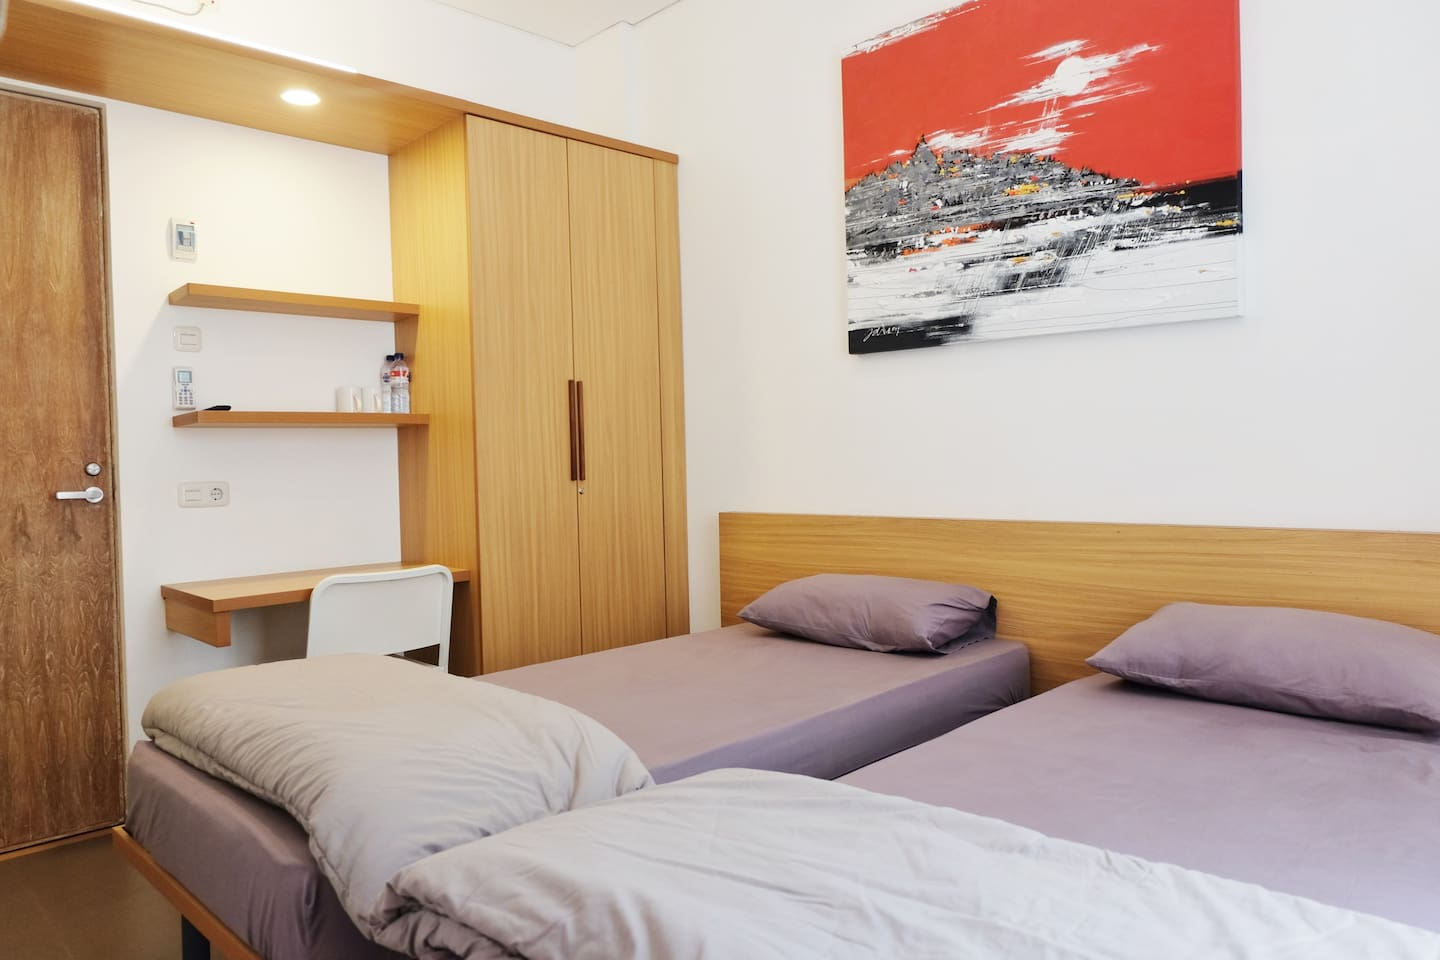 The space is 3,5m x 3,5 m, best accomodates 2 persons. Bed sheets are always changed after each check out. Basement parking is available fot guest. Inside the room: 1. One air conditioned bedroom with a bed for 2 persons. 2. One bathroom with water heater, shampoo, soap, and towel. 3. Please bring your own toothbrush and slipper. 4. TV with local and international channels. 5. There are many minimarkets near Aristo Residence, you can get anything you need there